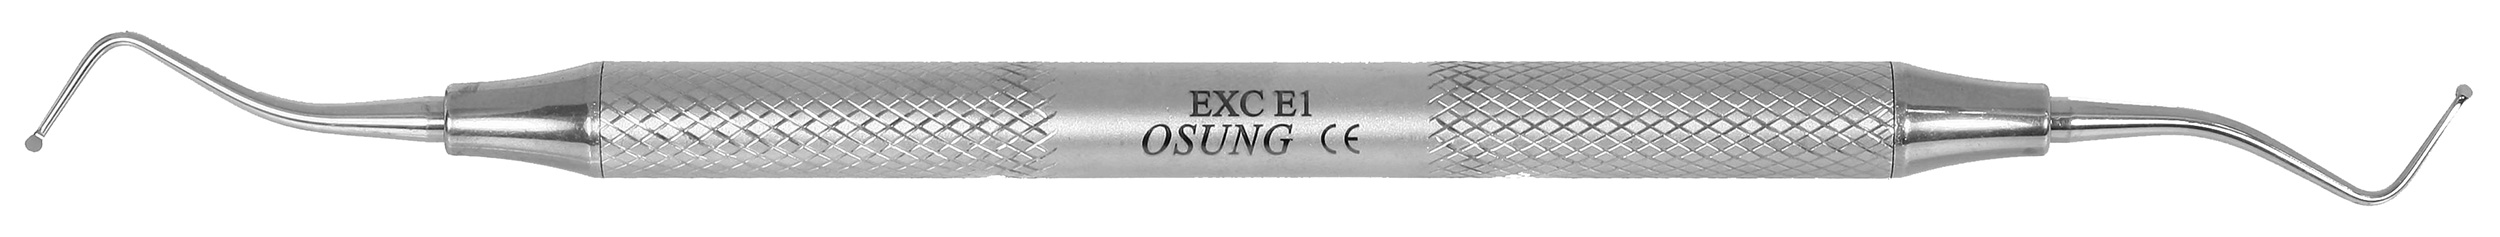 EXCE1